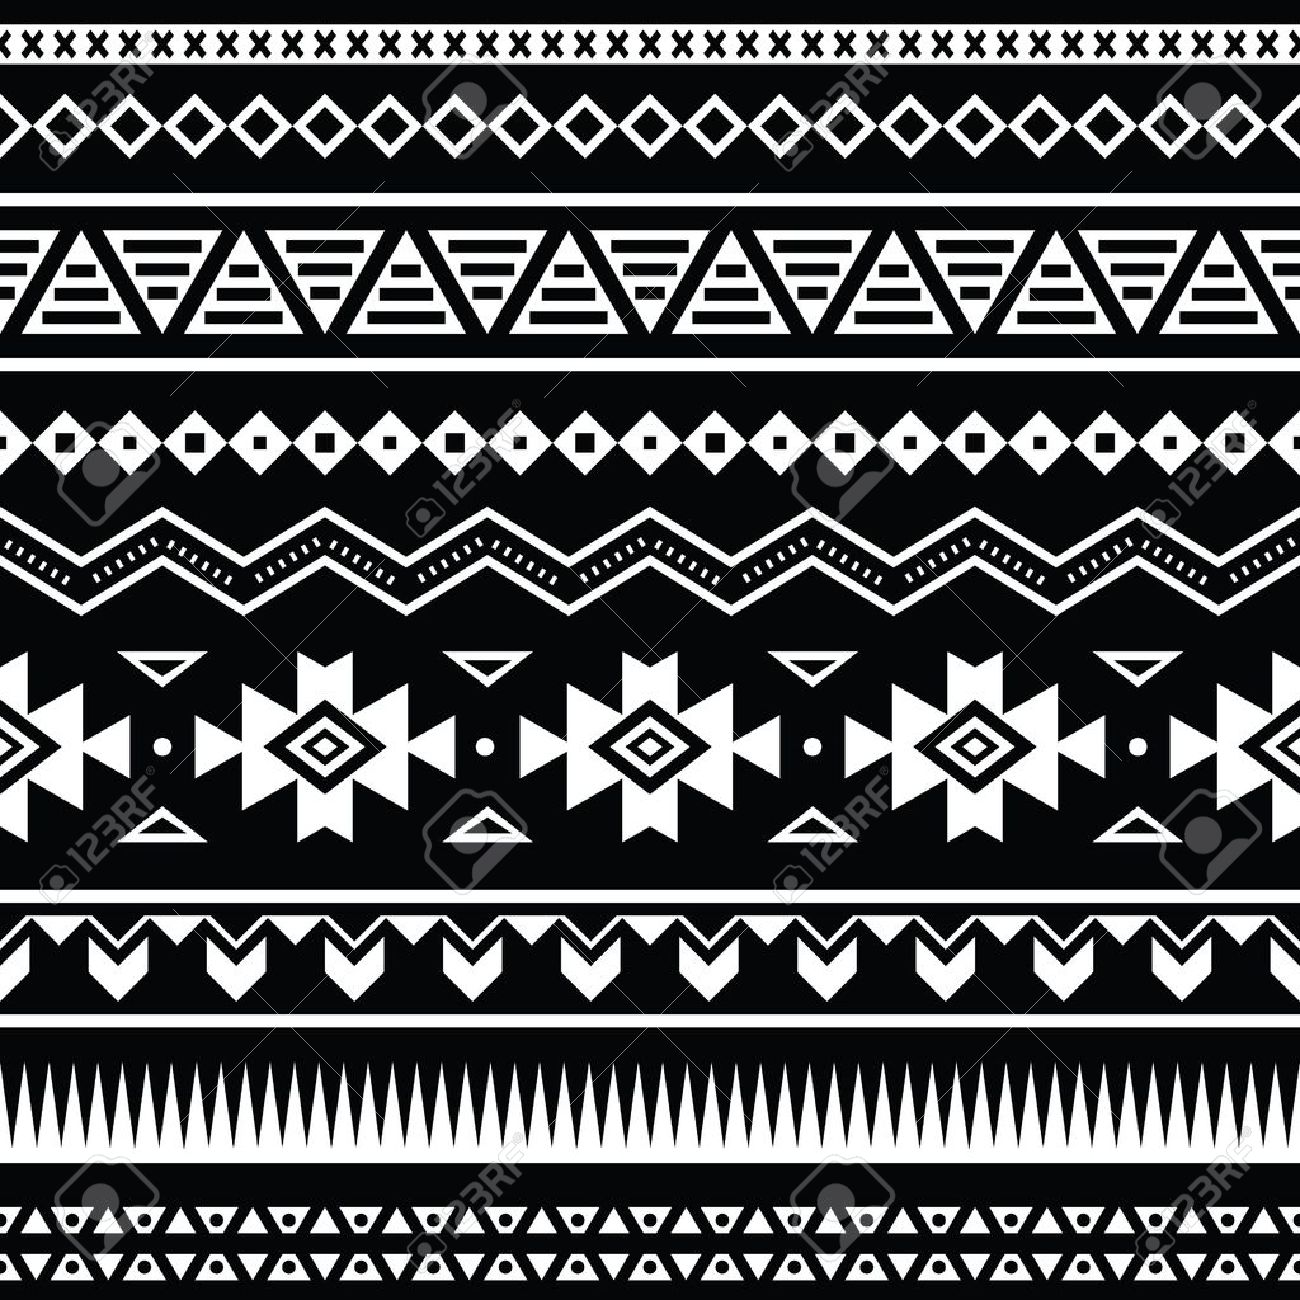 aztec seamless pattern, tribal black and white background royalty